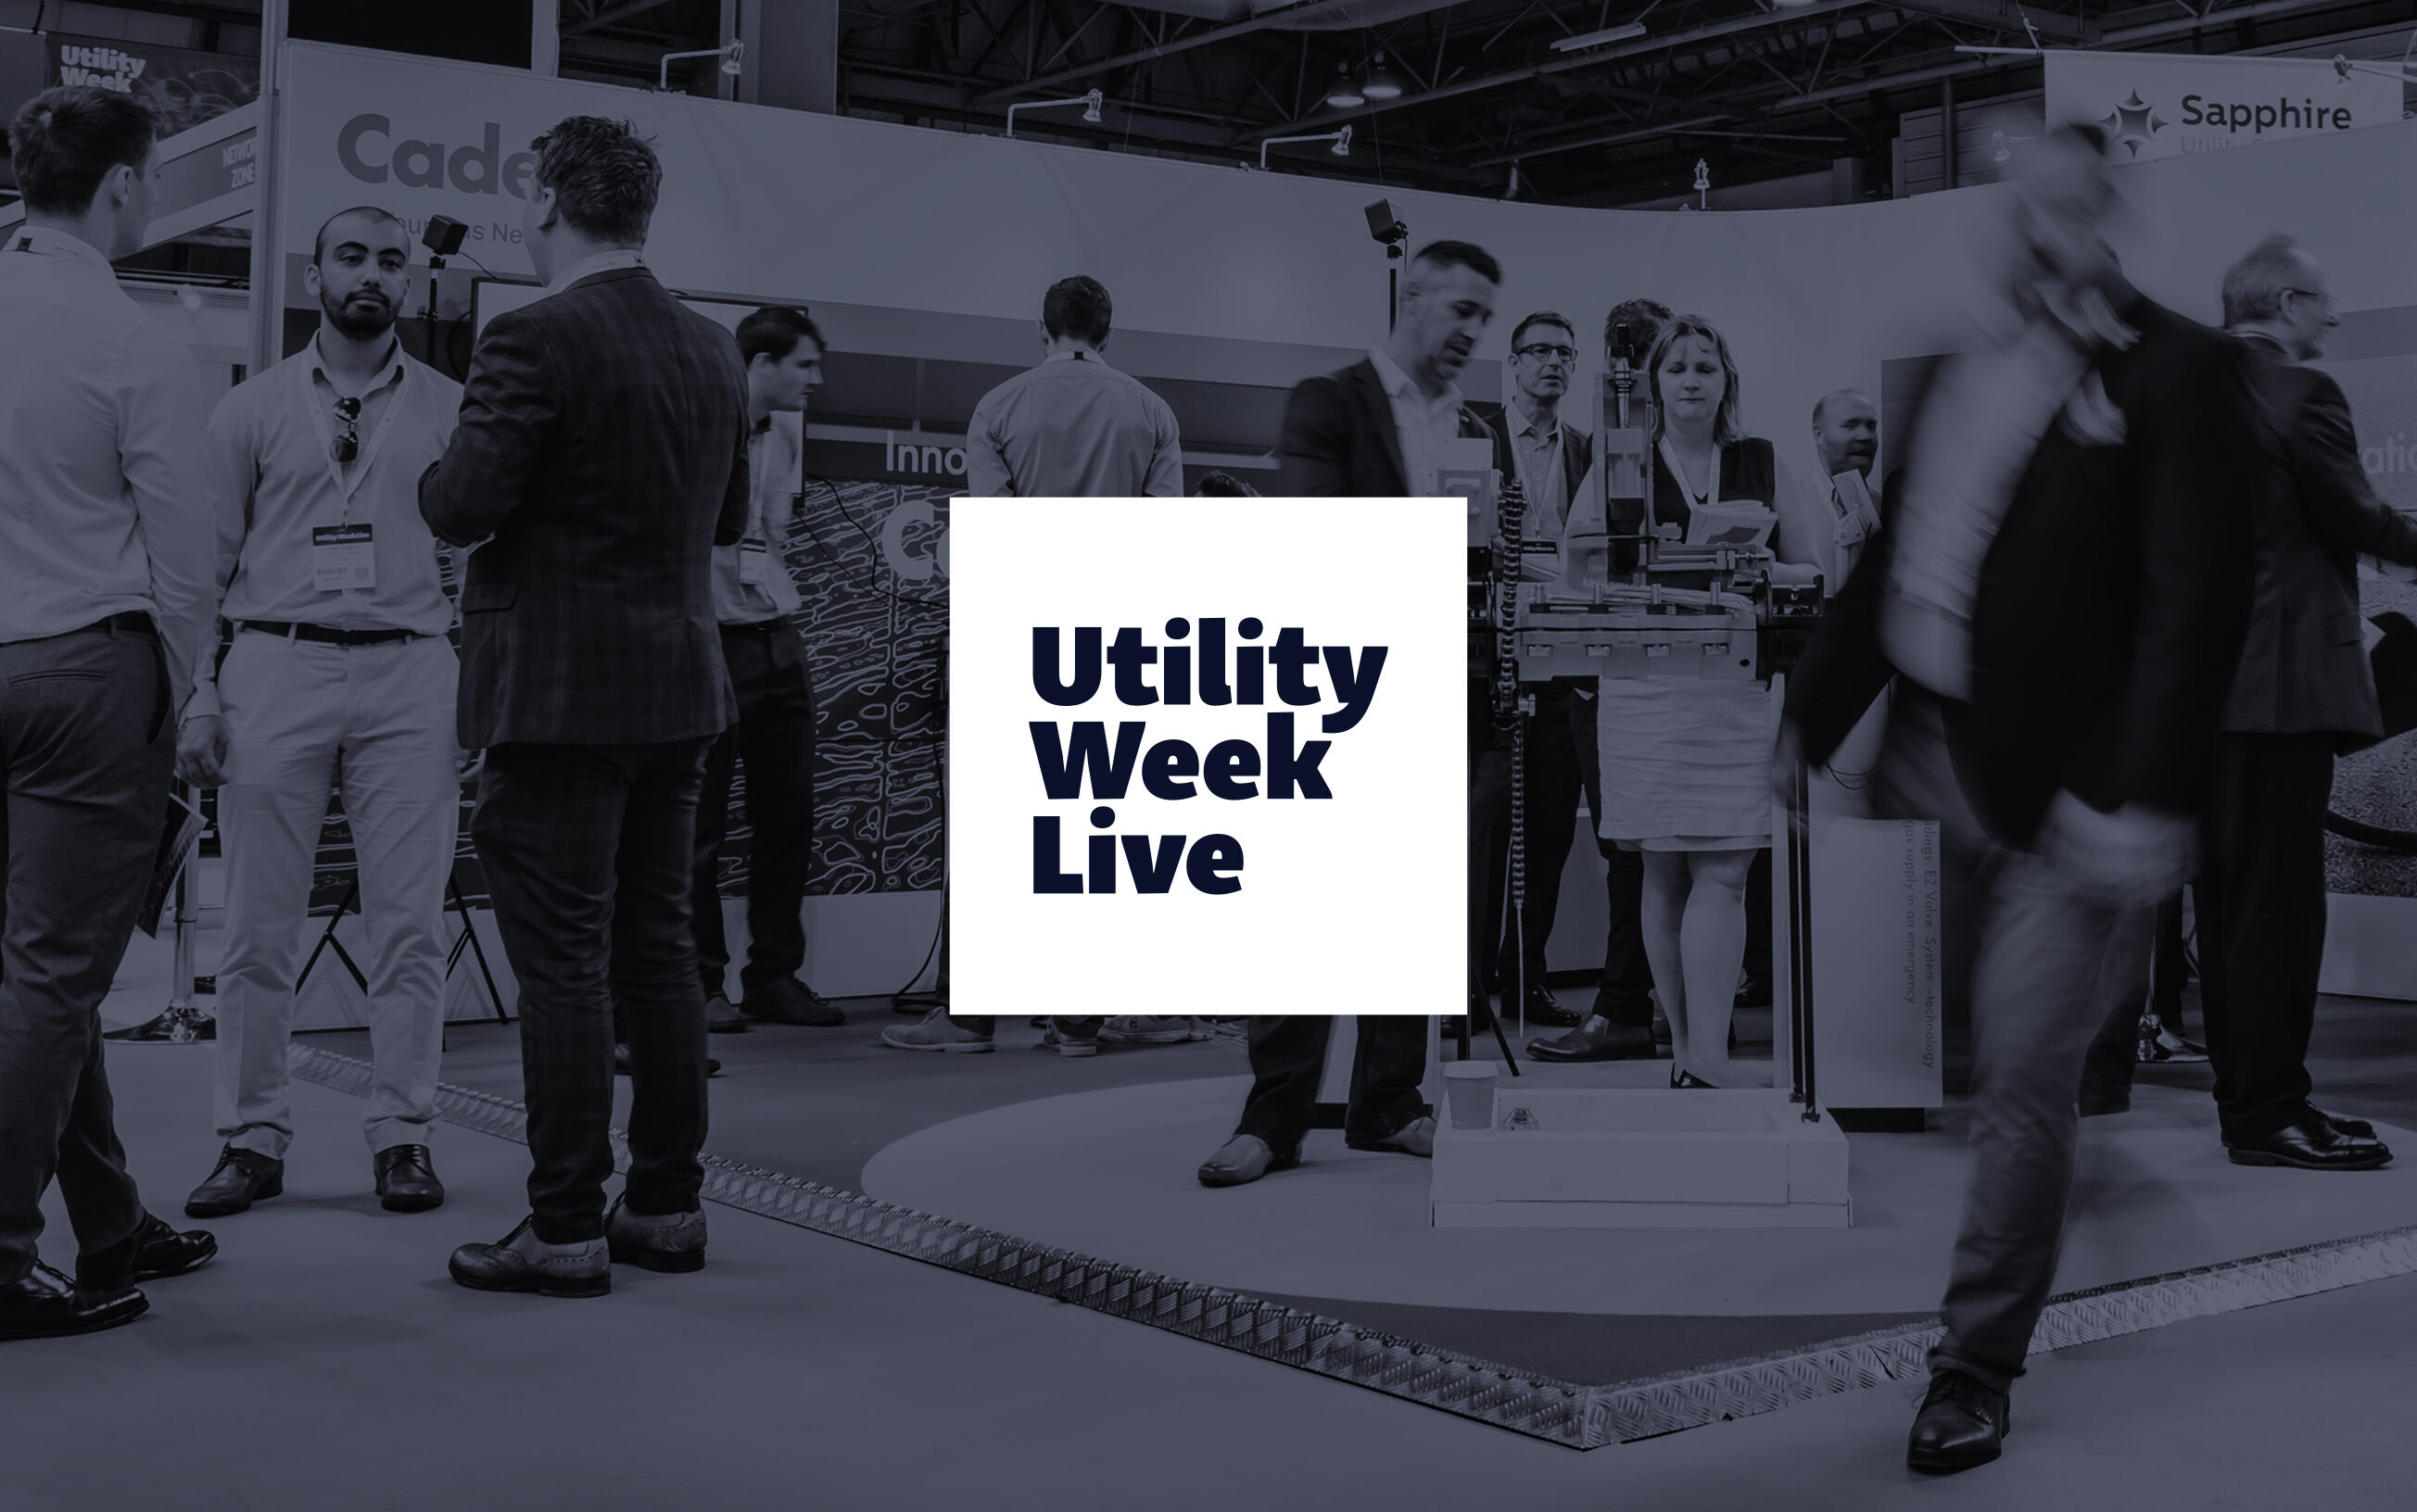 Utility Week Live. UnitedUs Brands that unite people, purpose, and potential